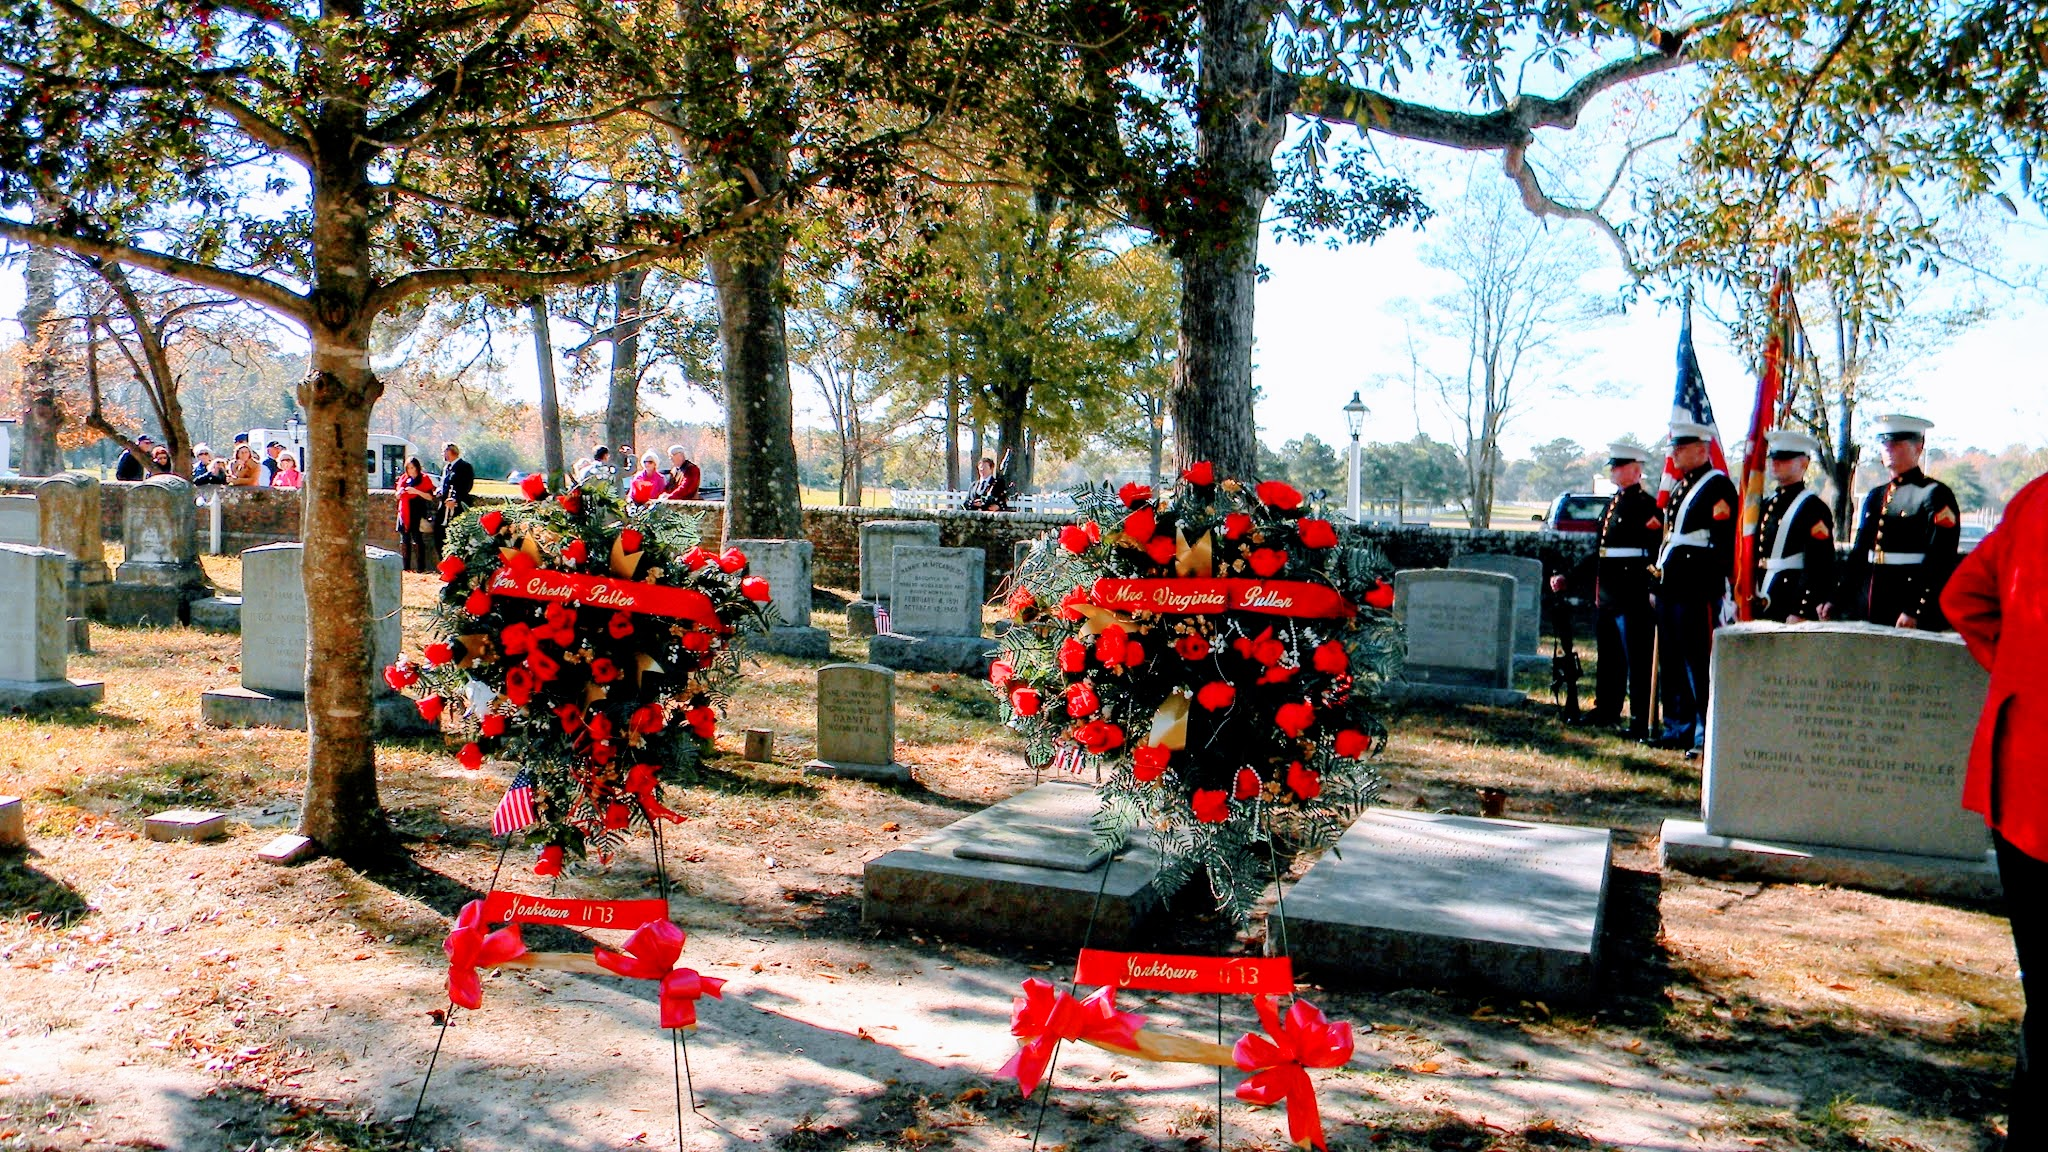 Graves of Chesty and Virginia Puller, Saluda, VA